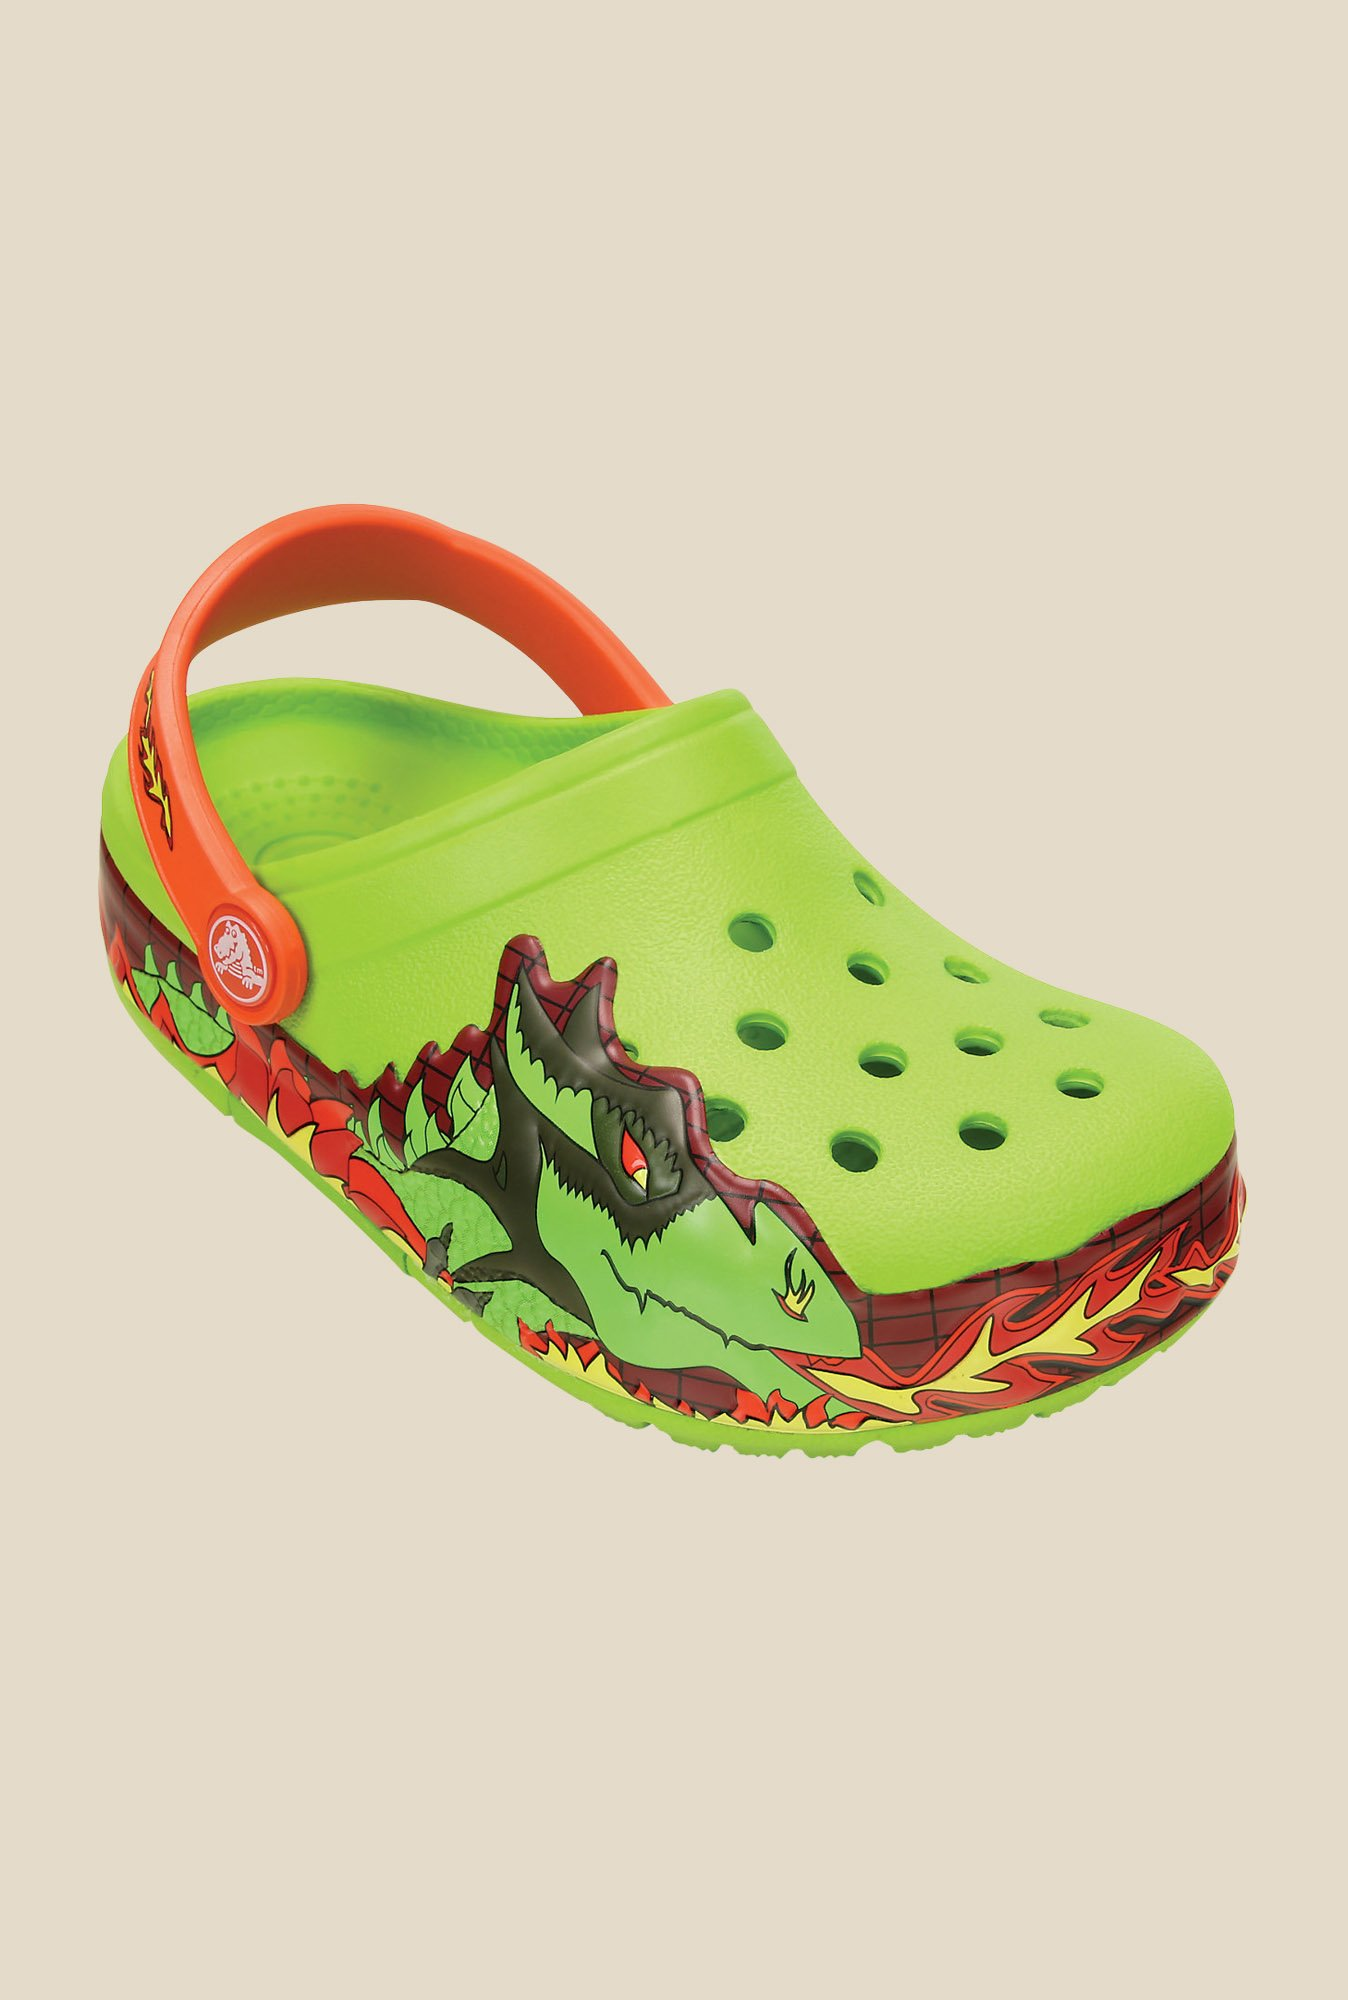 Crocs Fire Dragon Volt Green Clogs